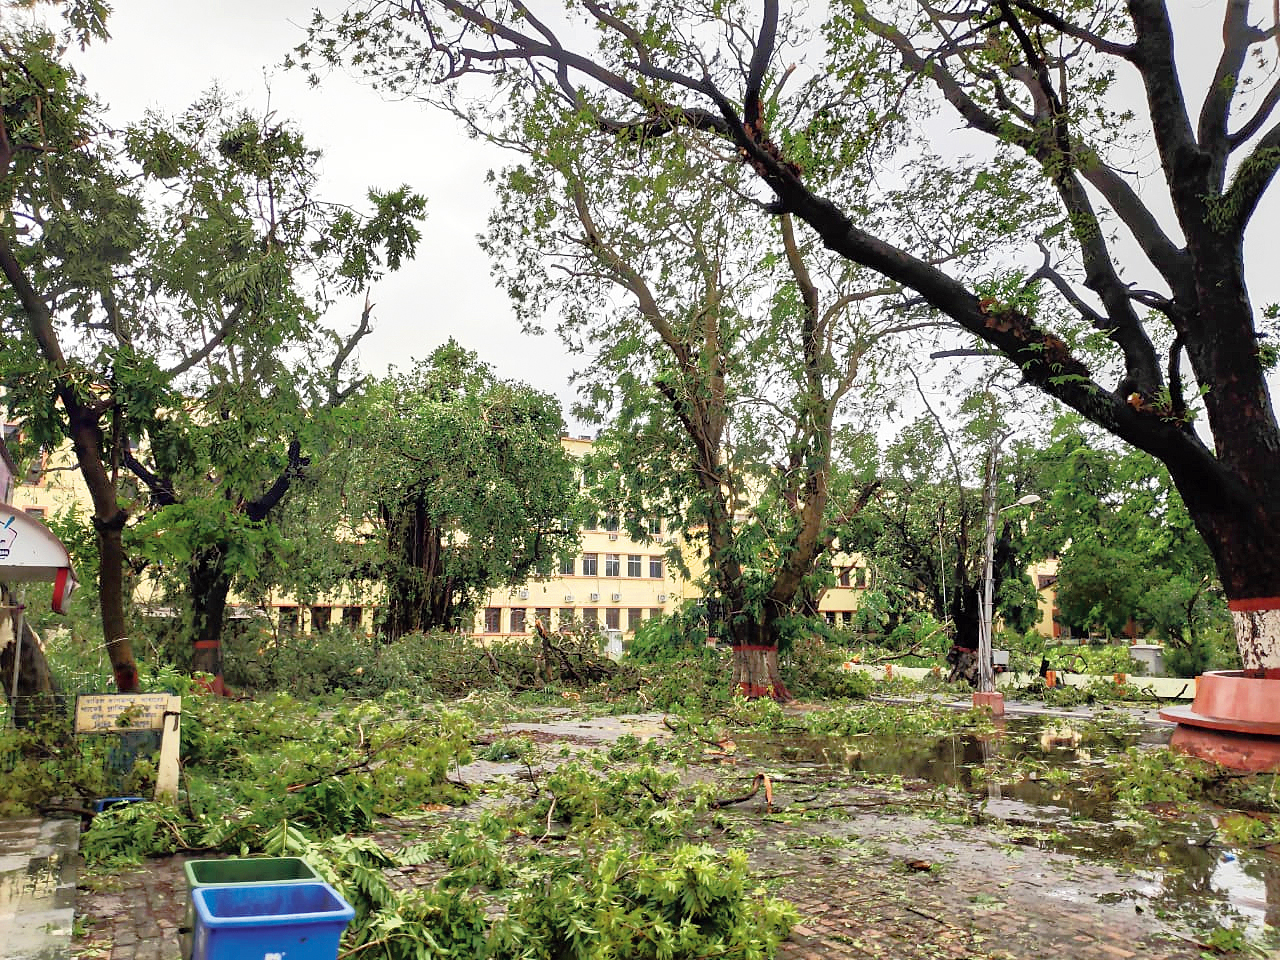 A tree at IIEST Shibpur that were damaged by Cyclone Amphan on May 20